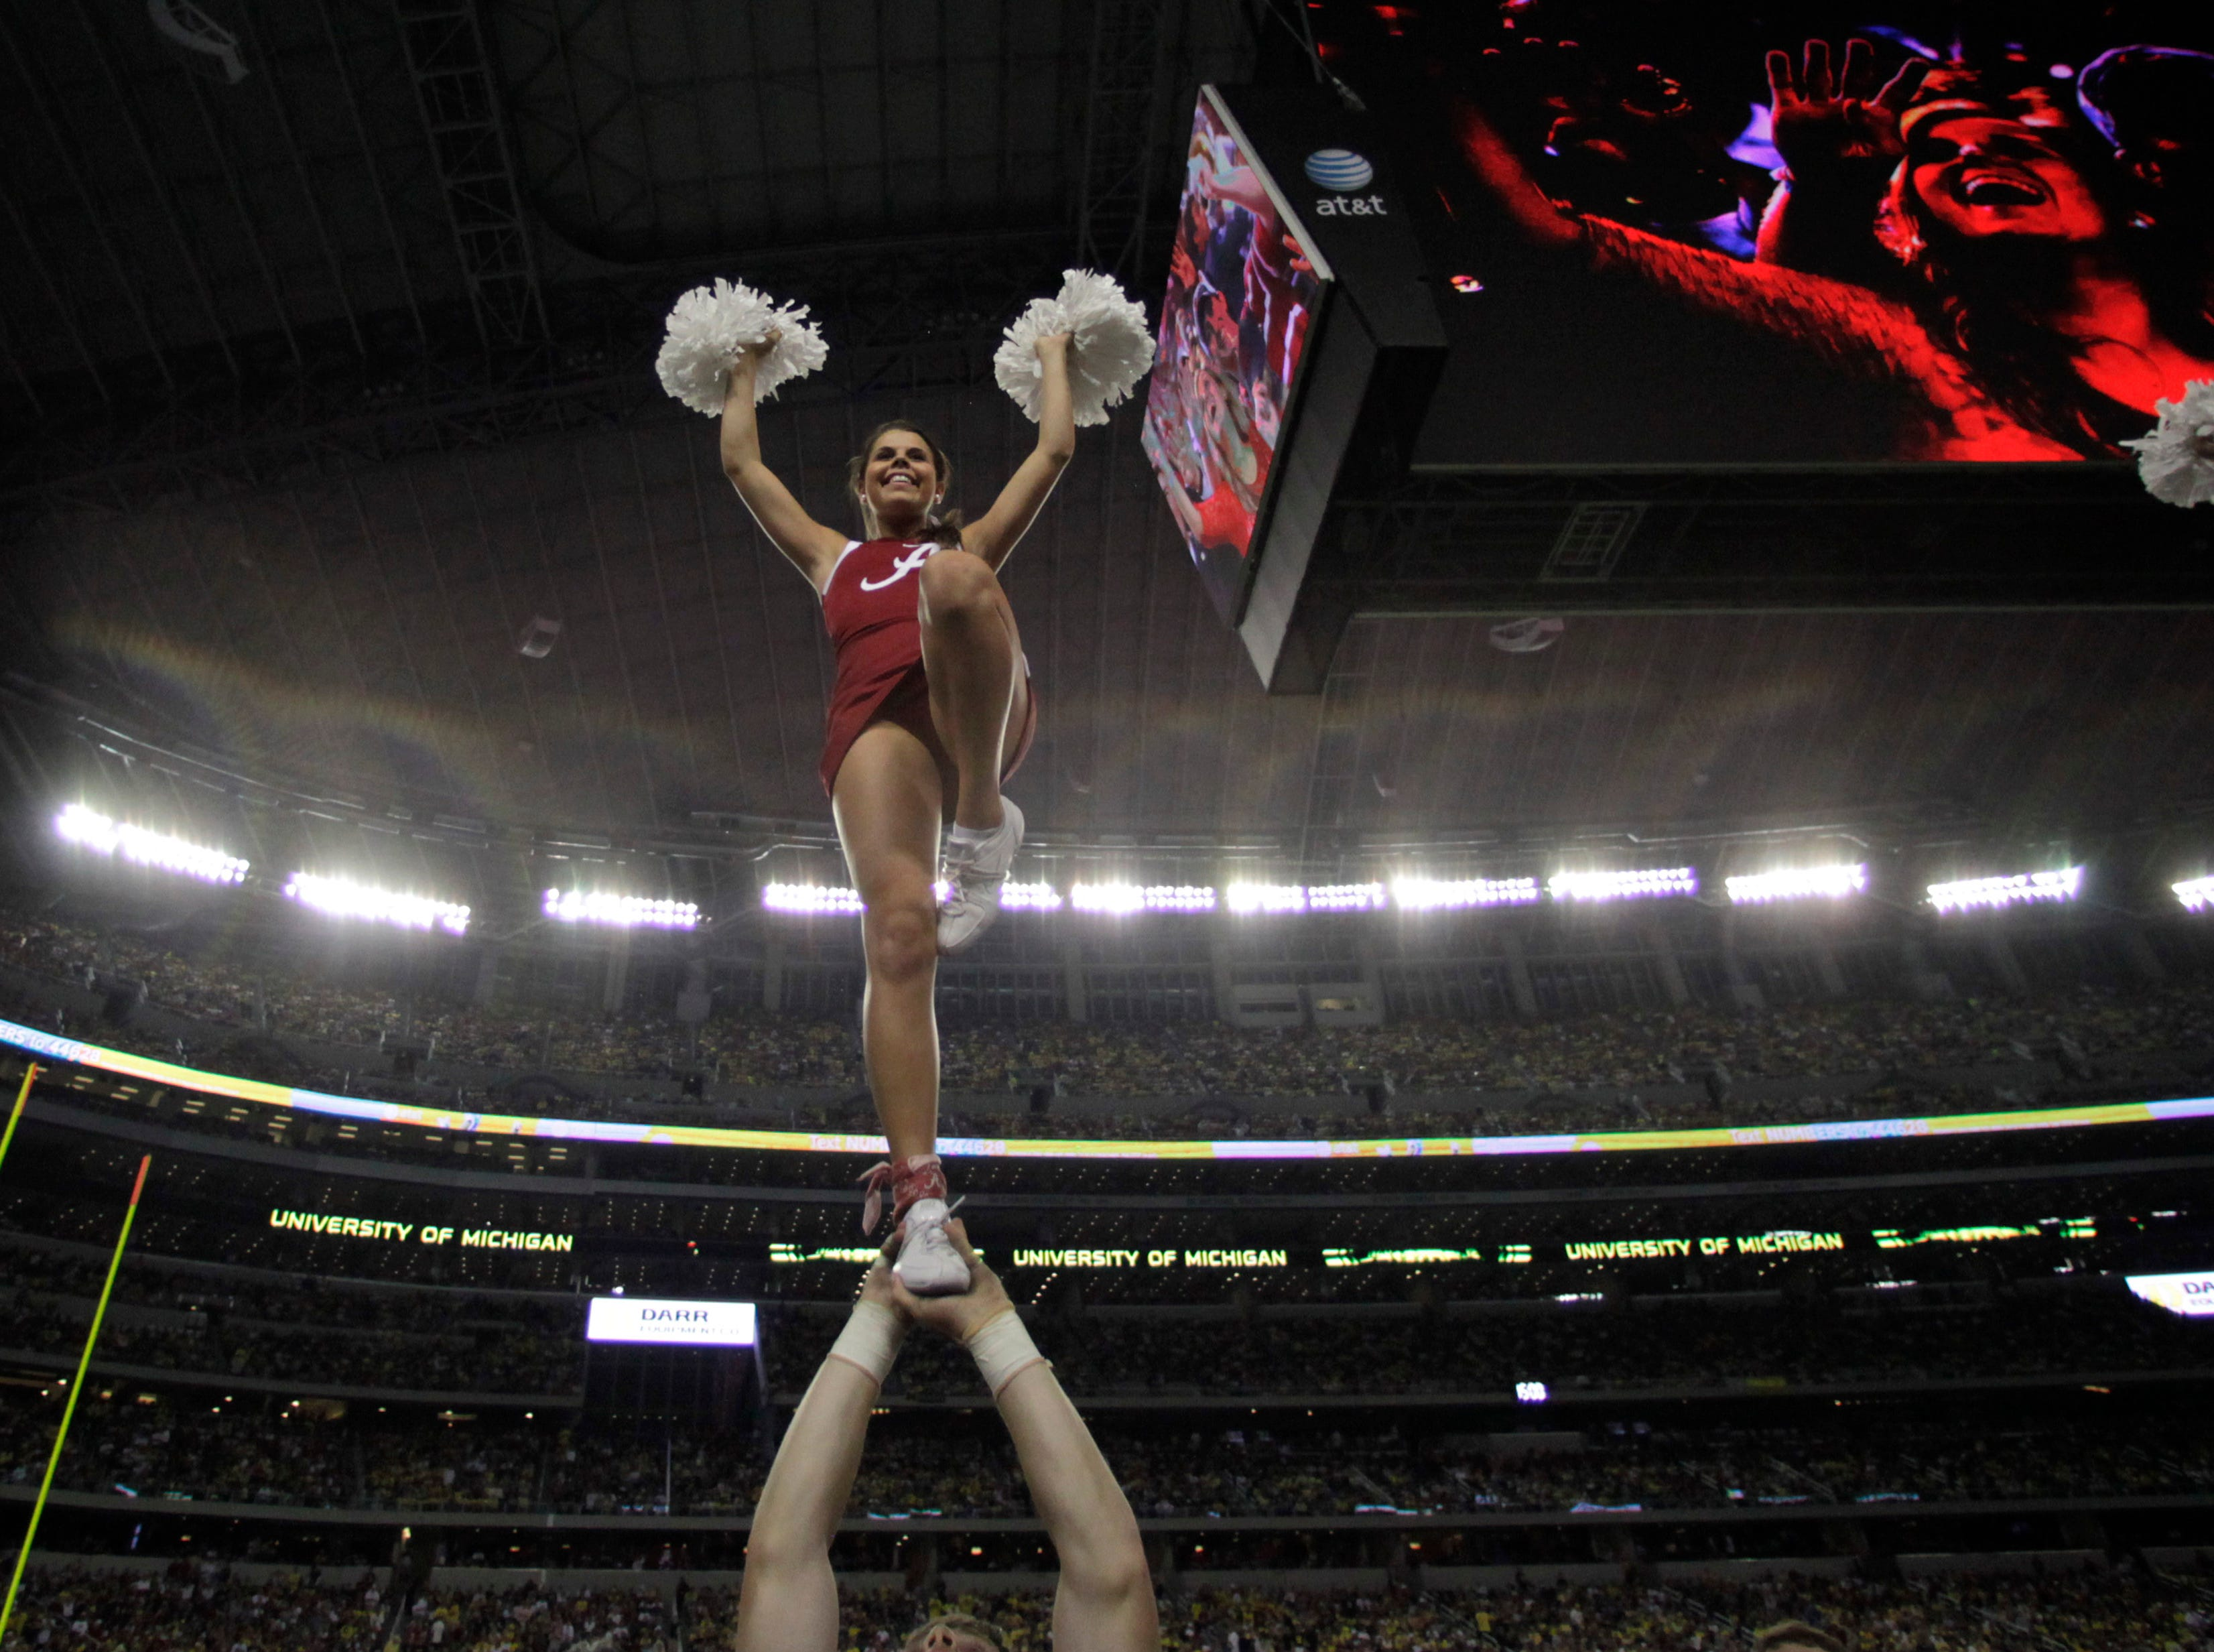 An Alabama cheerleader his held high during the second half of the NCAA college football game against  Michigan at Cowboys Stadium in Arlington, Texas, Saturday, Sept. 1, 2012. McCarron threw two touchdown passes in the Alabama  41-14 win.  (AP Photo/LM Otero)